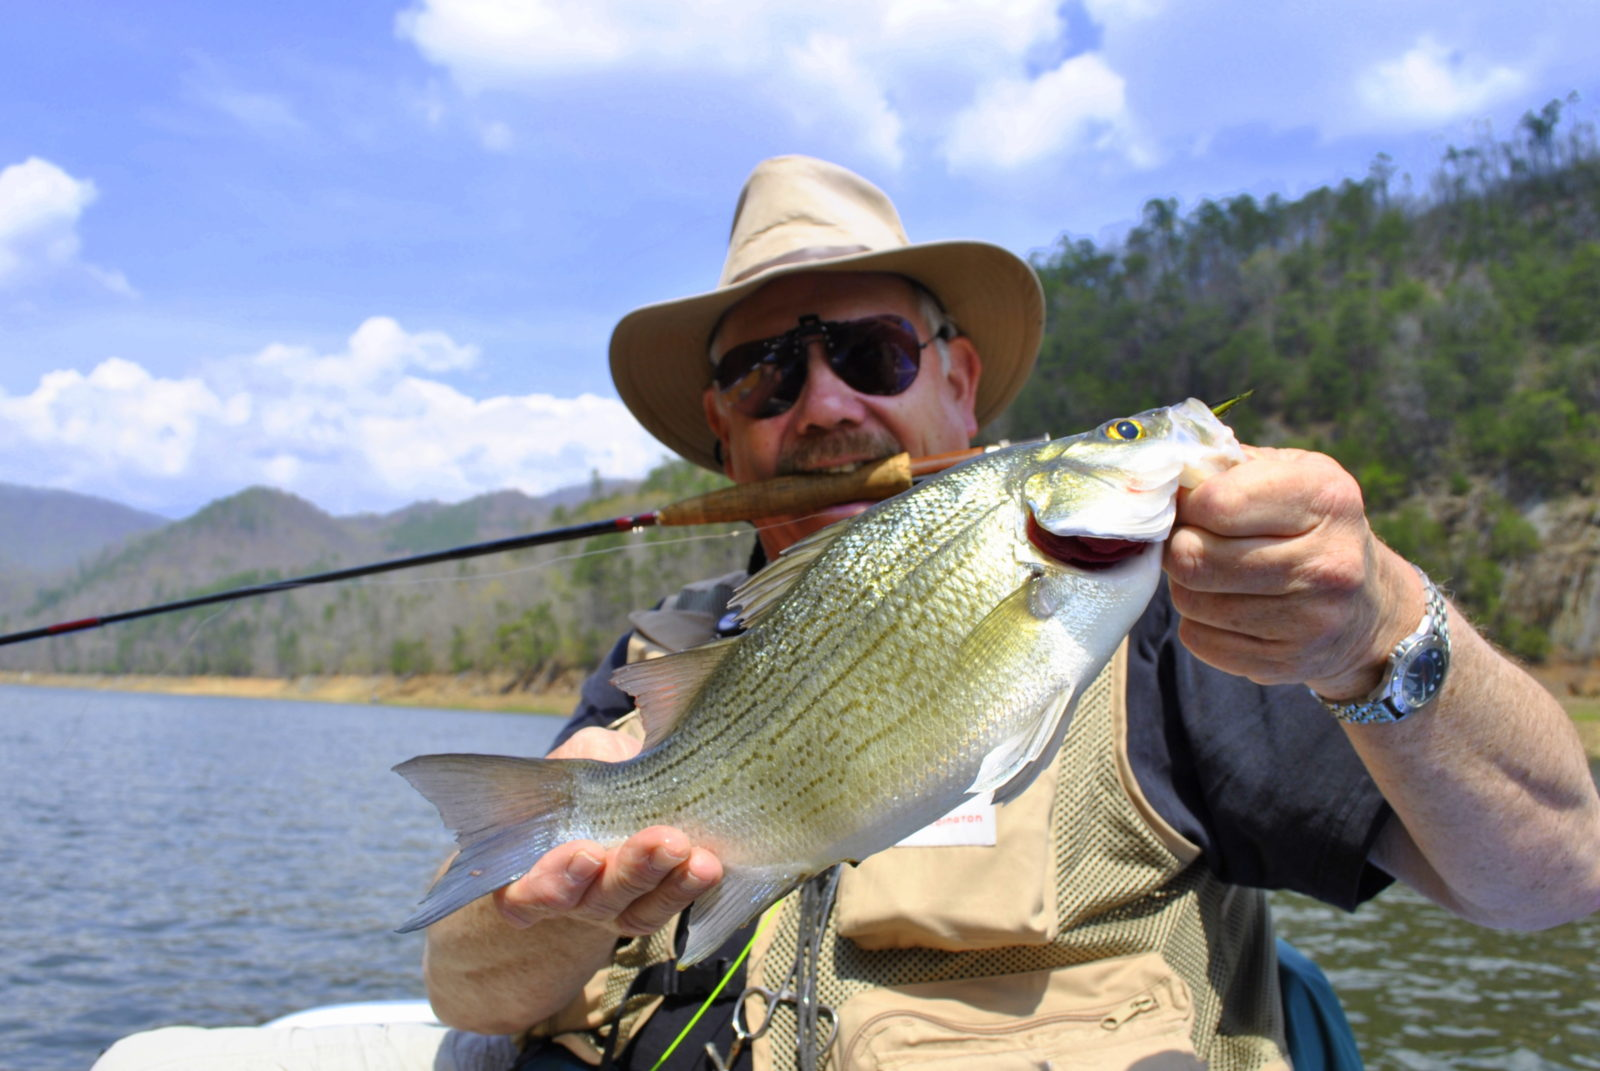 Fontana lake guided fly and spin fishing for bass trout for Balboa lake fishing